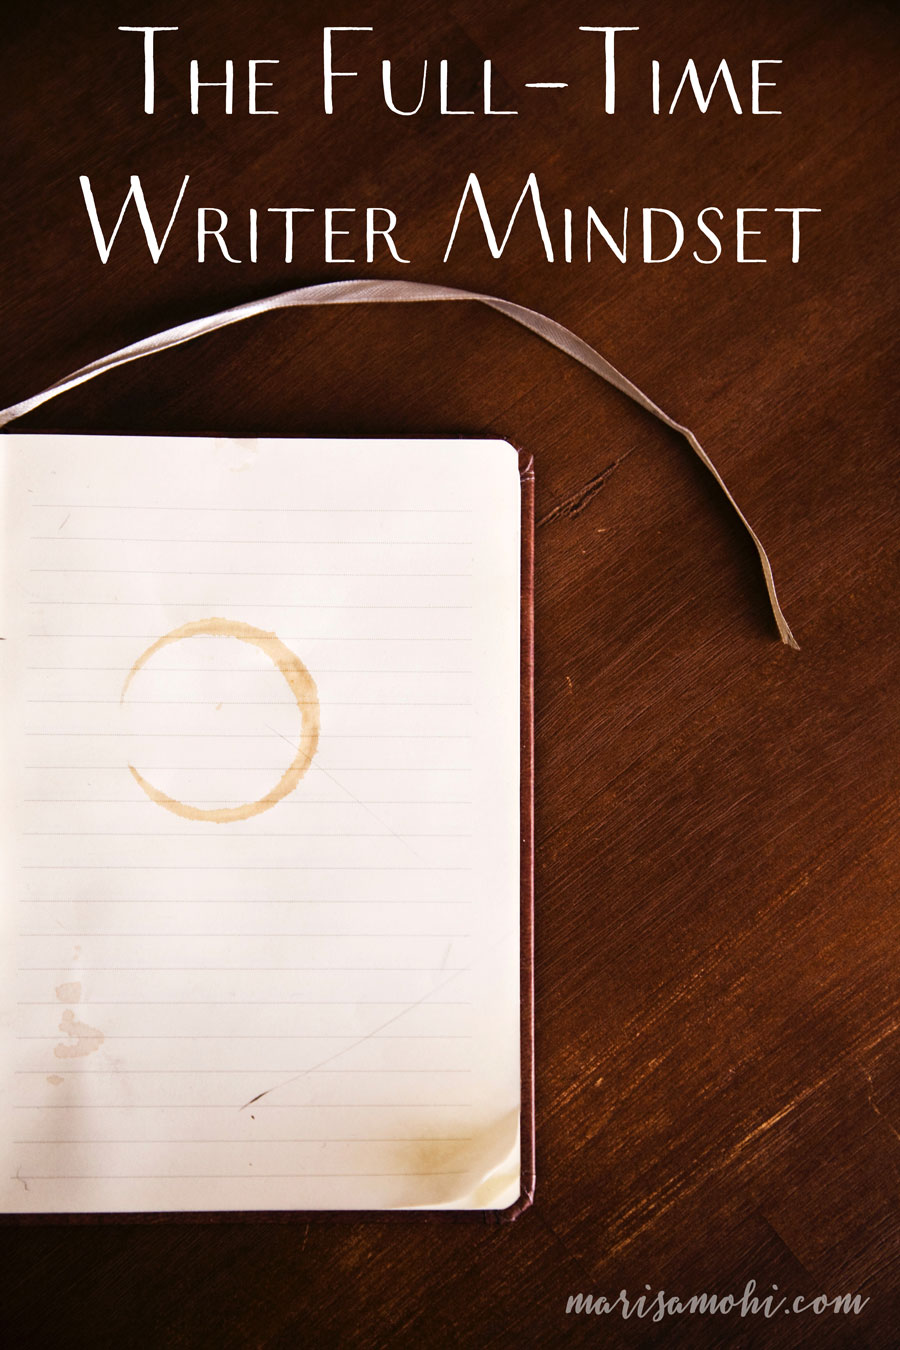 The Full-Time Writer Mindset   My full-time writer mindset is what enables me to keep working toward my goals as a writer.